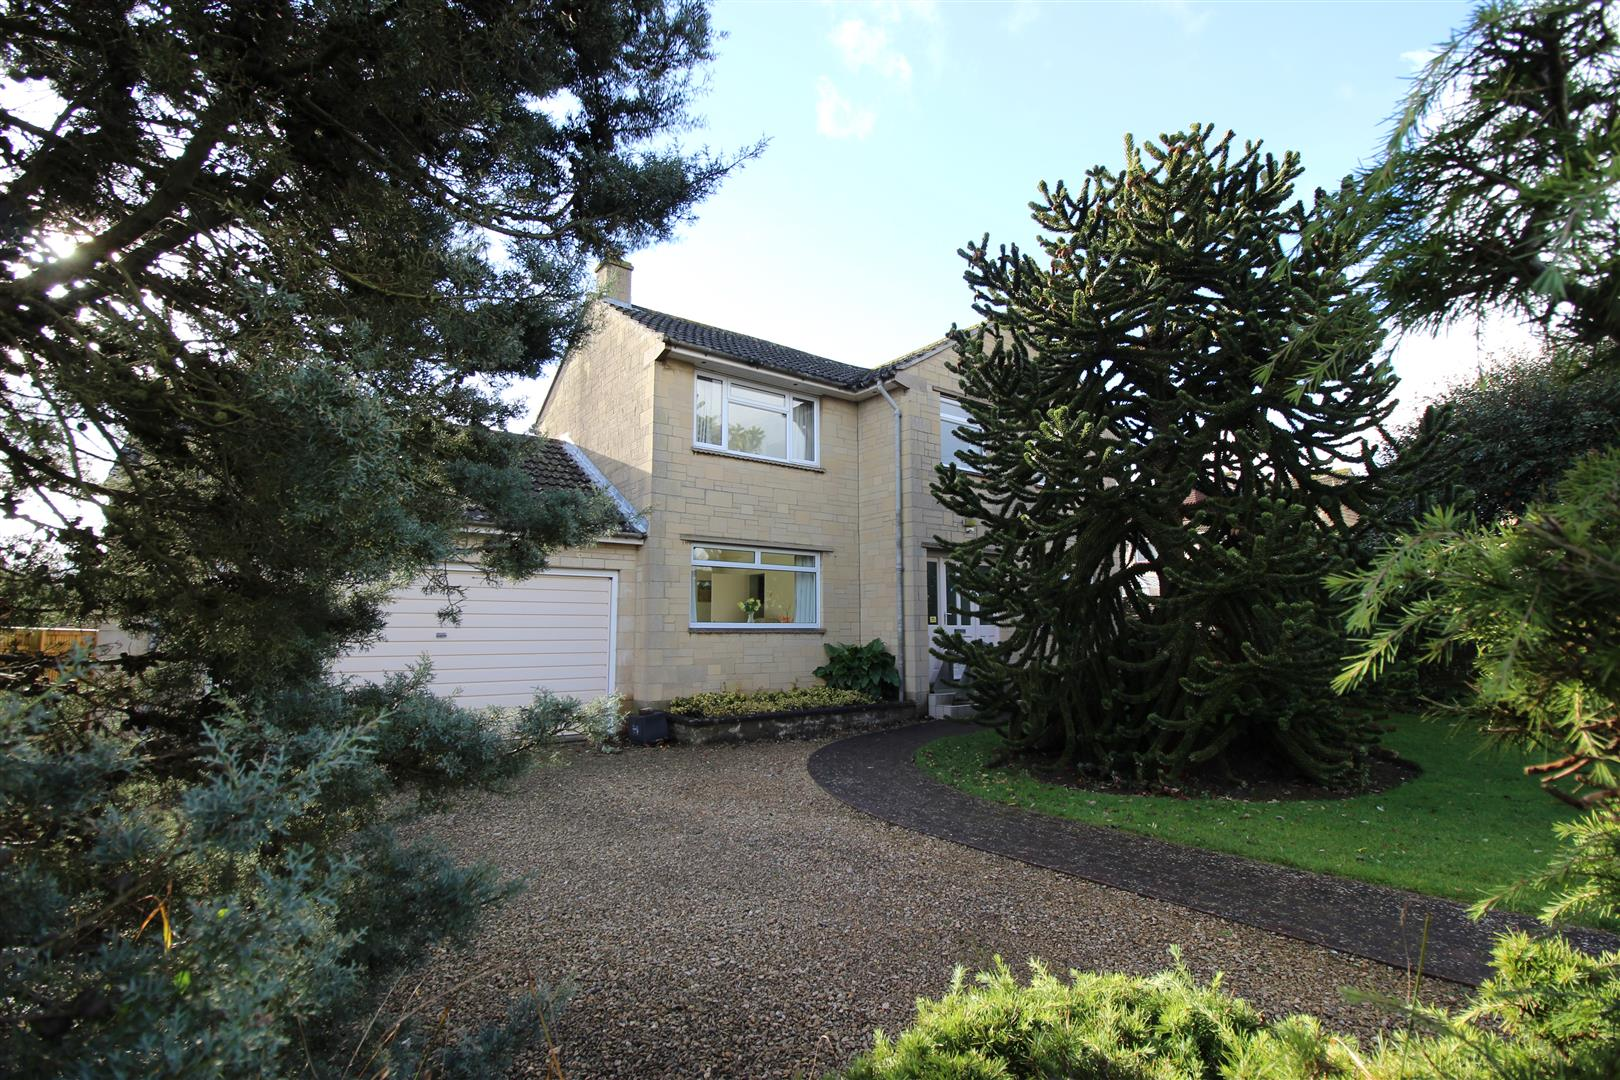 4 Bedrooms Detached House for sale in The Tinings, Chippenham